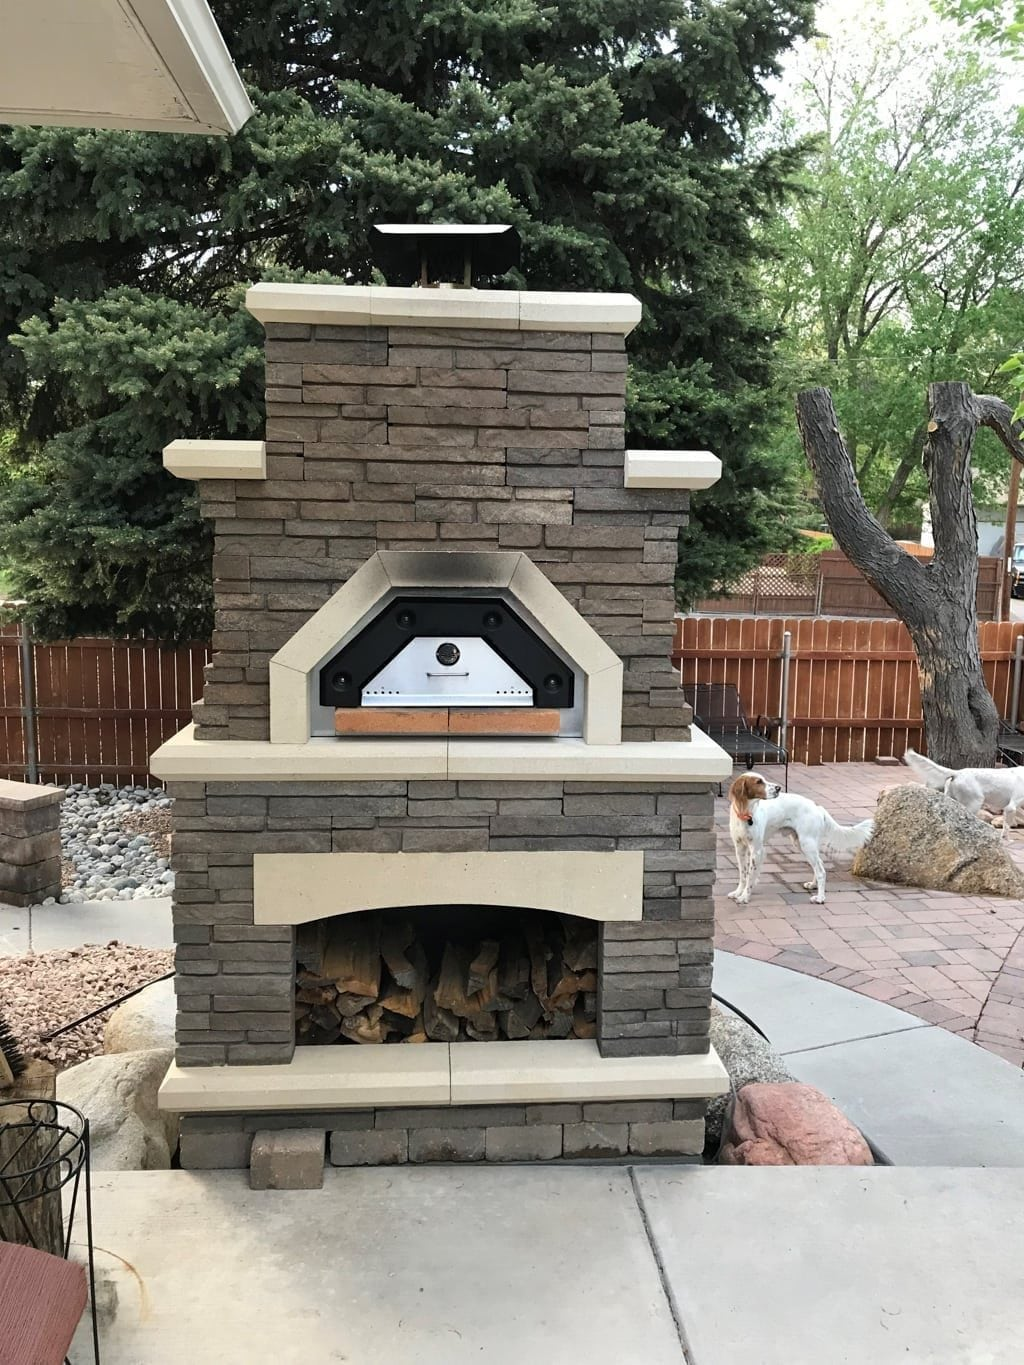 Outdoor Pizza Oven Contractor Colorado Springs Co